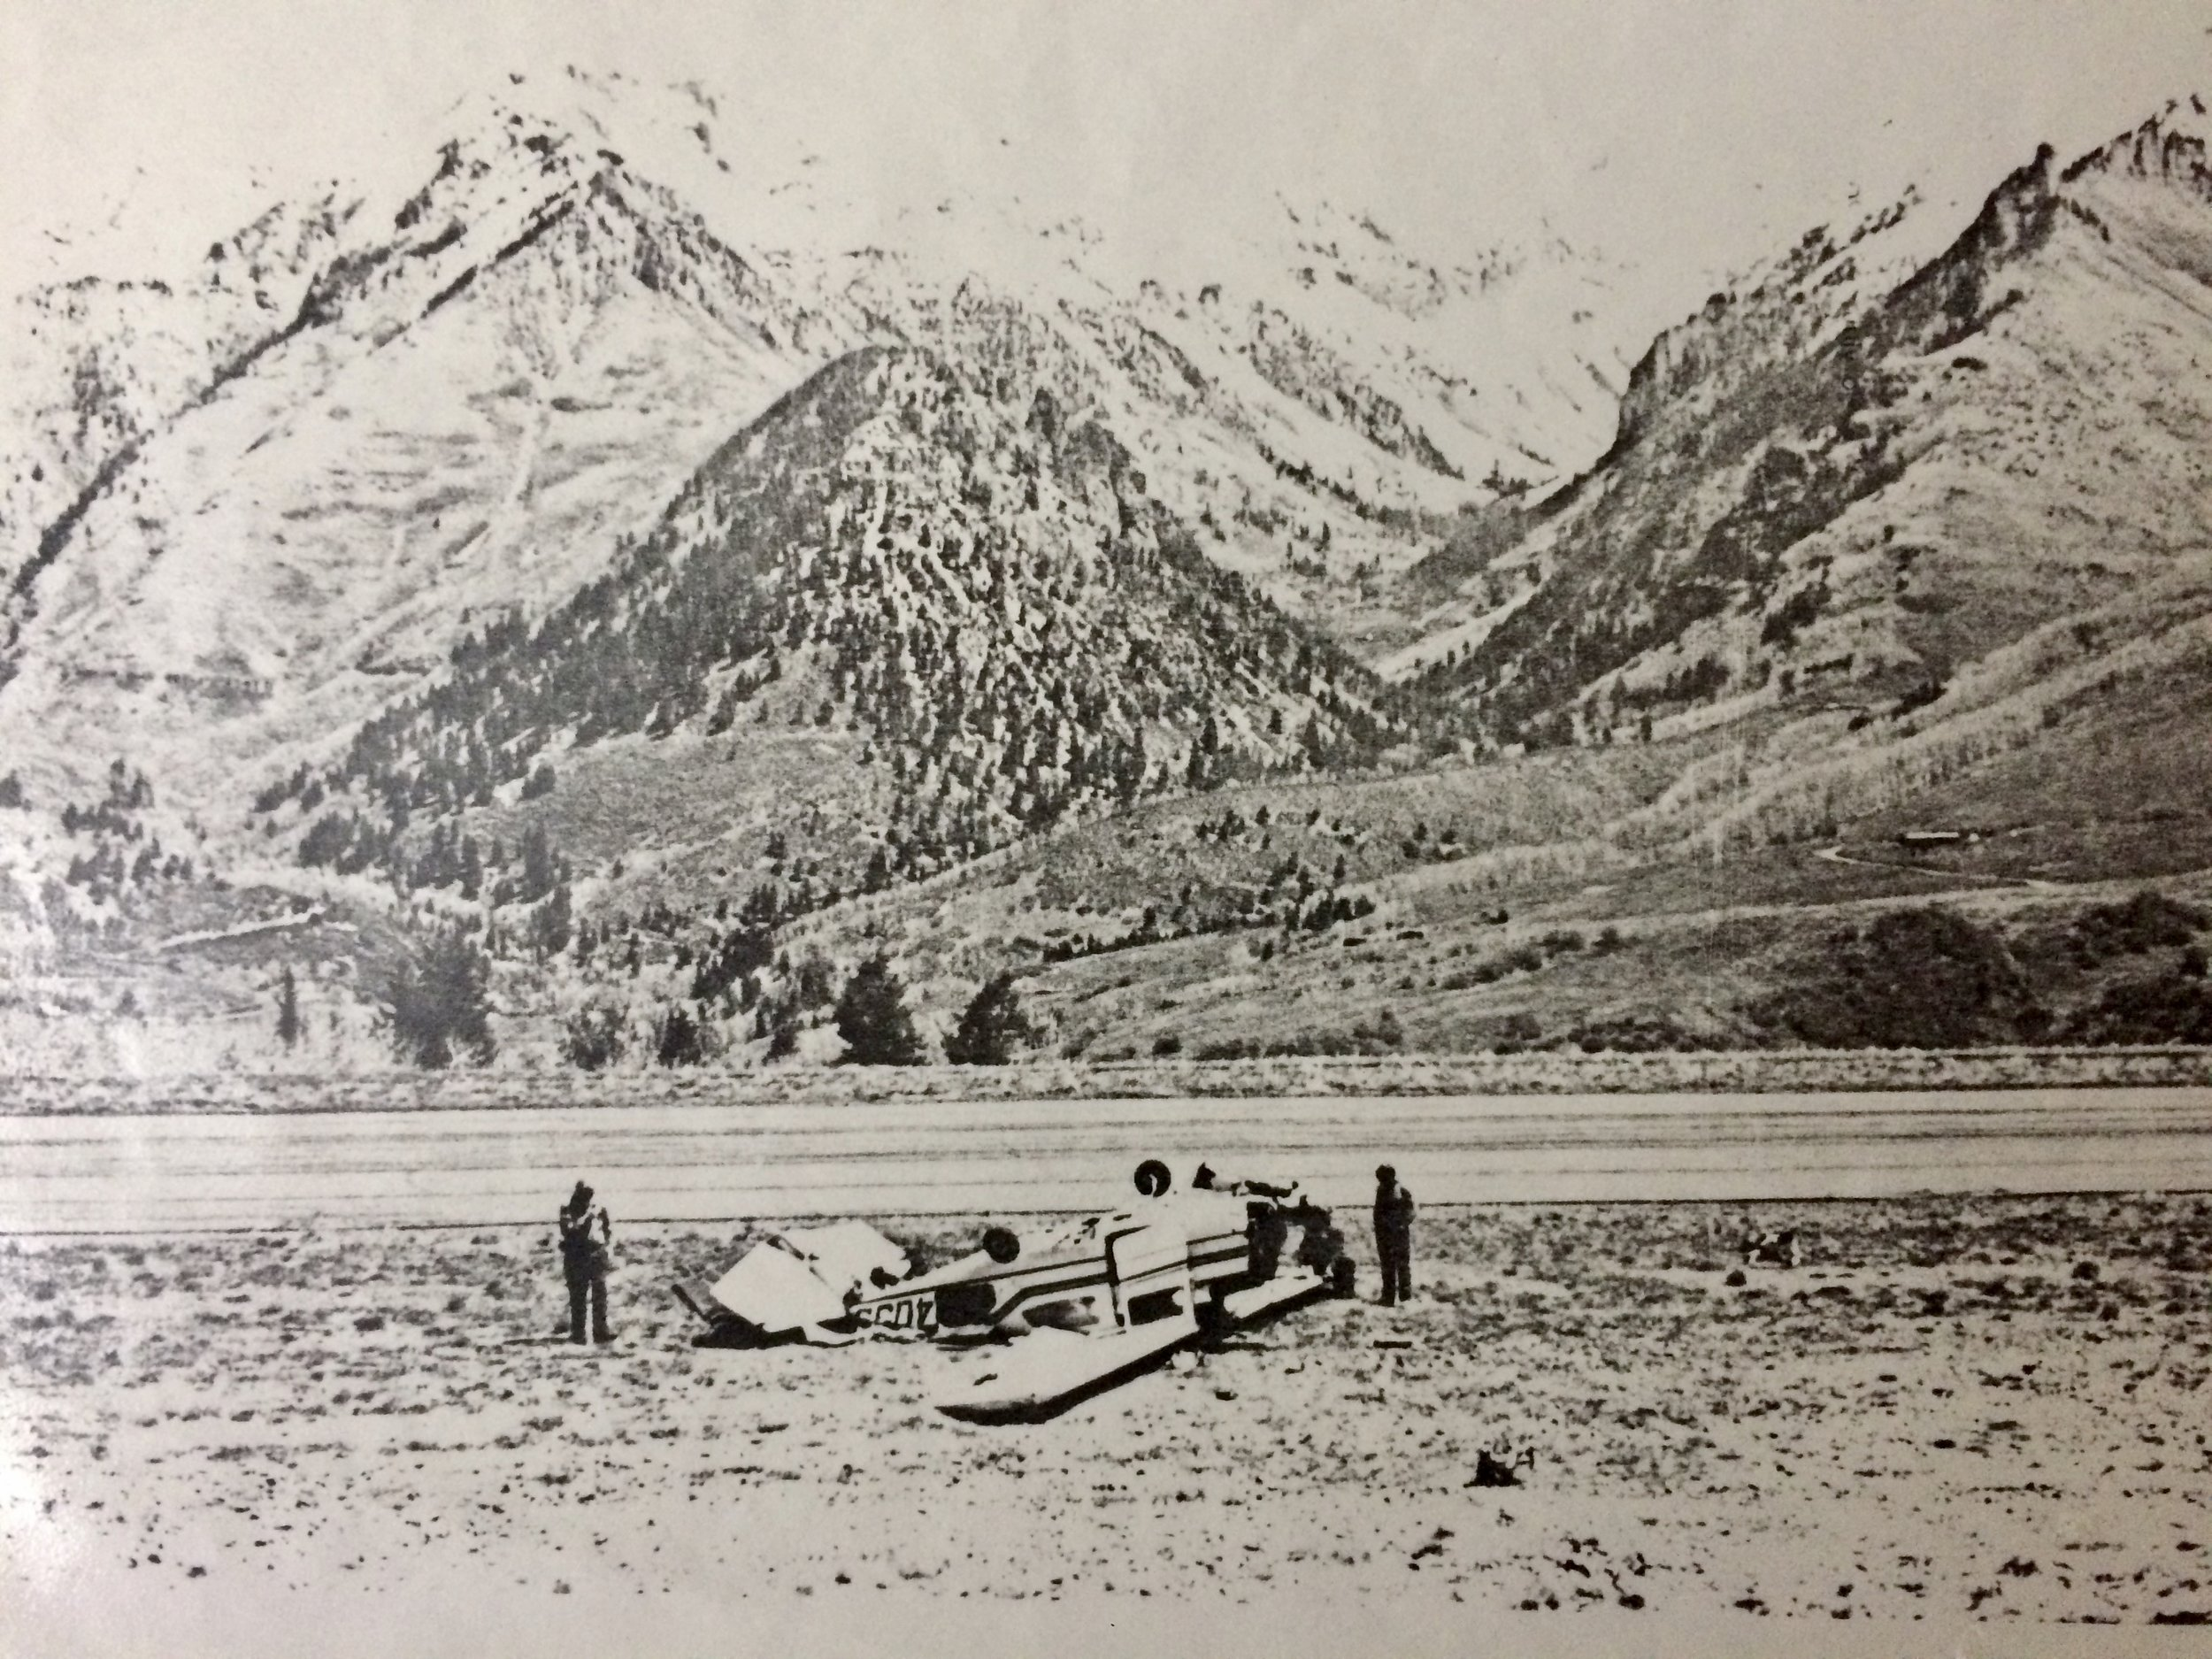 TELLURIDE, CO 05/19/1990, 1600 MDT CESSNA 210L   Accident Number: Registration: Aircraft Damage:    Injuries:   DEN90FA109  N2403S  Substantial  3 Serious, 1 Minor, 2 None  Part 91: General Aviation - Business  AFTER HAVING DISCUSSED THE LOCAL ADVERSE WIND CONDITIONS NEAR THE DEPARTURE END OF THE RUNWAY WITH AIRPORT OPERATION PERSONNEL, THE PRIVATE PILOT ELECTED TO ATTEMPT THE FLIGHT. HE SAID THAT DURING HIS TAKEOFF CLIMB HE UNEXPECTEDLY ENCOUNTERED A VERY STRONG DOWNDRAFT. IN AN ATTEMPT TO MAINTAIN ALTITUDE, THE AIRCRAFT STALLED AND COLLIDED WITH THE GROUND. DESPITE WARNING FROM AIRCRAFT PERSONNEL, THE PILOT STATED BEFORE THE FLIGHT THAT HE SHOULD ATTEMPT TO CLIMB OVER ADVERSE WINDS RATHER THAN MAINTAIN ADDITIONAL AIRSPEED. THE AIRPLANE WAS VERY NEAR MAXIMUM GROSS WEIGHT AND THE PILOT USED 20 DEGREES OF FLAPS, INSTEAD OF THE RECOMMENDED 10. THE PILOT WAS AWARE OF A BOOKLET AT THE AIRPORT WARNING OF HAZARDOUS WIND CONDITIONS, ESPECIALLY WHEN WINDS WERE SOUTHERLY IN EXCESS OF 10 M.P.H. DENSITY ALTITUDE WAS 10,760 FEET.   Probable Cause and Findings    The National Transportation Safety Board determines the probable cause(s) of this accident to be: THE PILOT'S FAILURE TO MAINTAIN FLYING SPEED WHICH RESULTED IN A STALL. FACTOR WAS WIND SHEAR REPORTED OFF DEPARTURE END OF RWY.